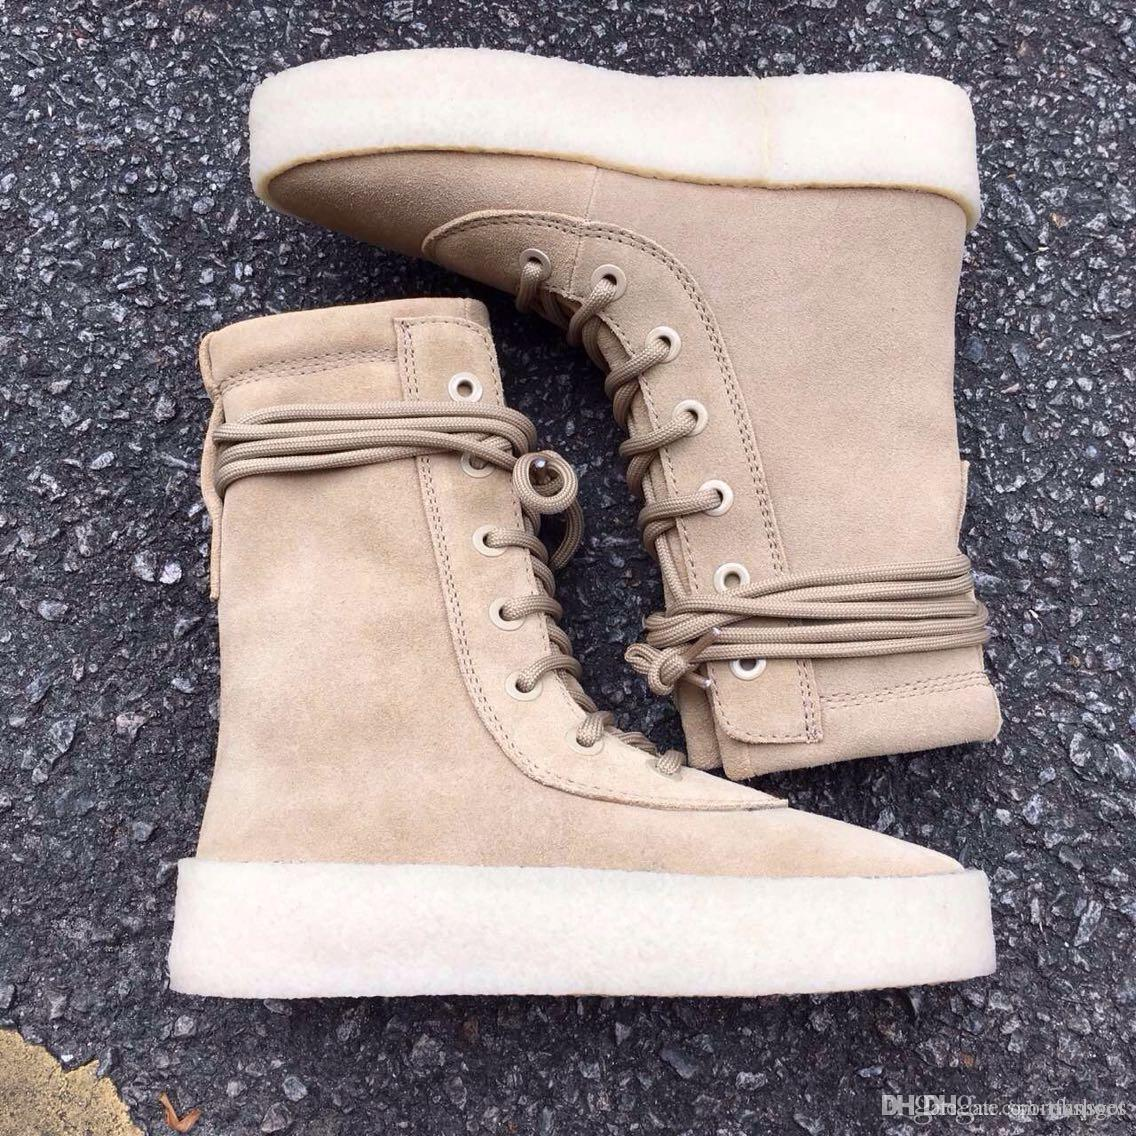 e4fe832a6de New 2016 Kanye West Season 2 Crepe Boot New Boot High Cut Made In Spain  With Box Fashion Sneakers Men Women Boot Size 36 45 Running Spikes Track  Shoes From ...